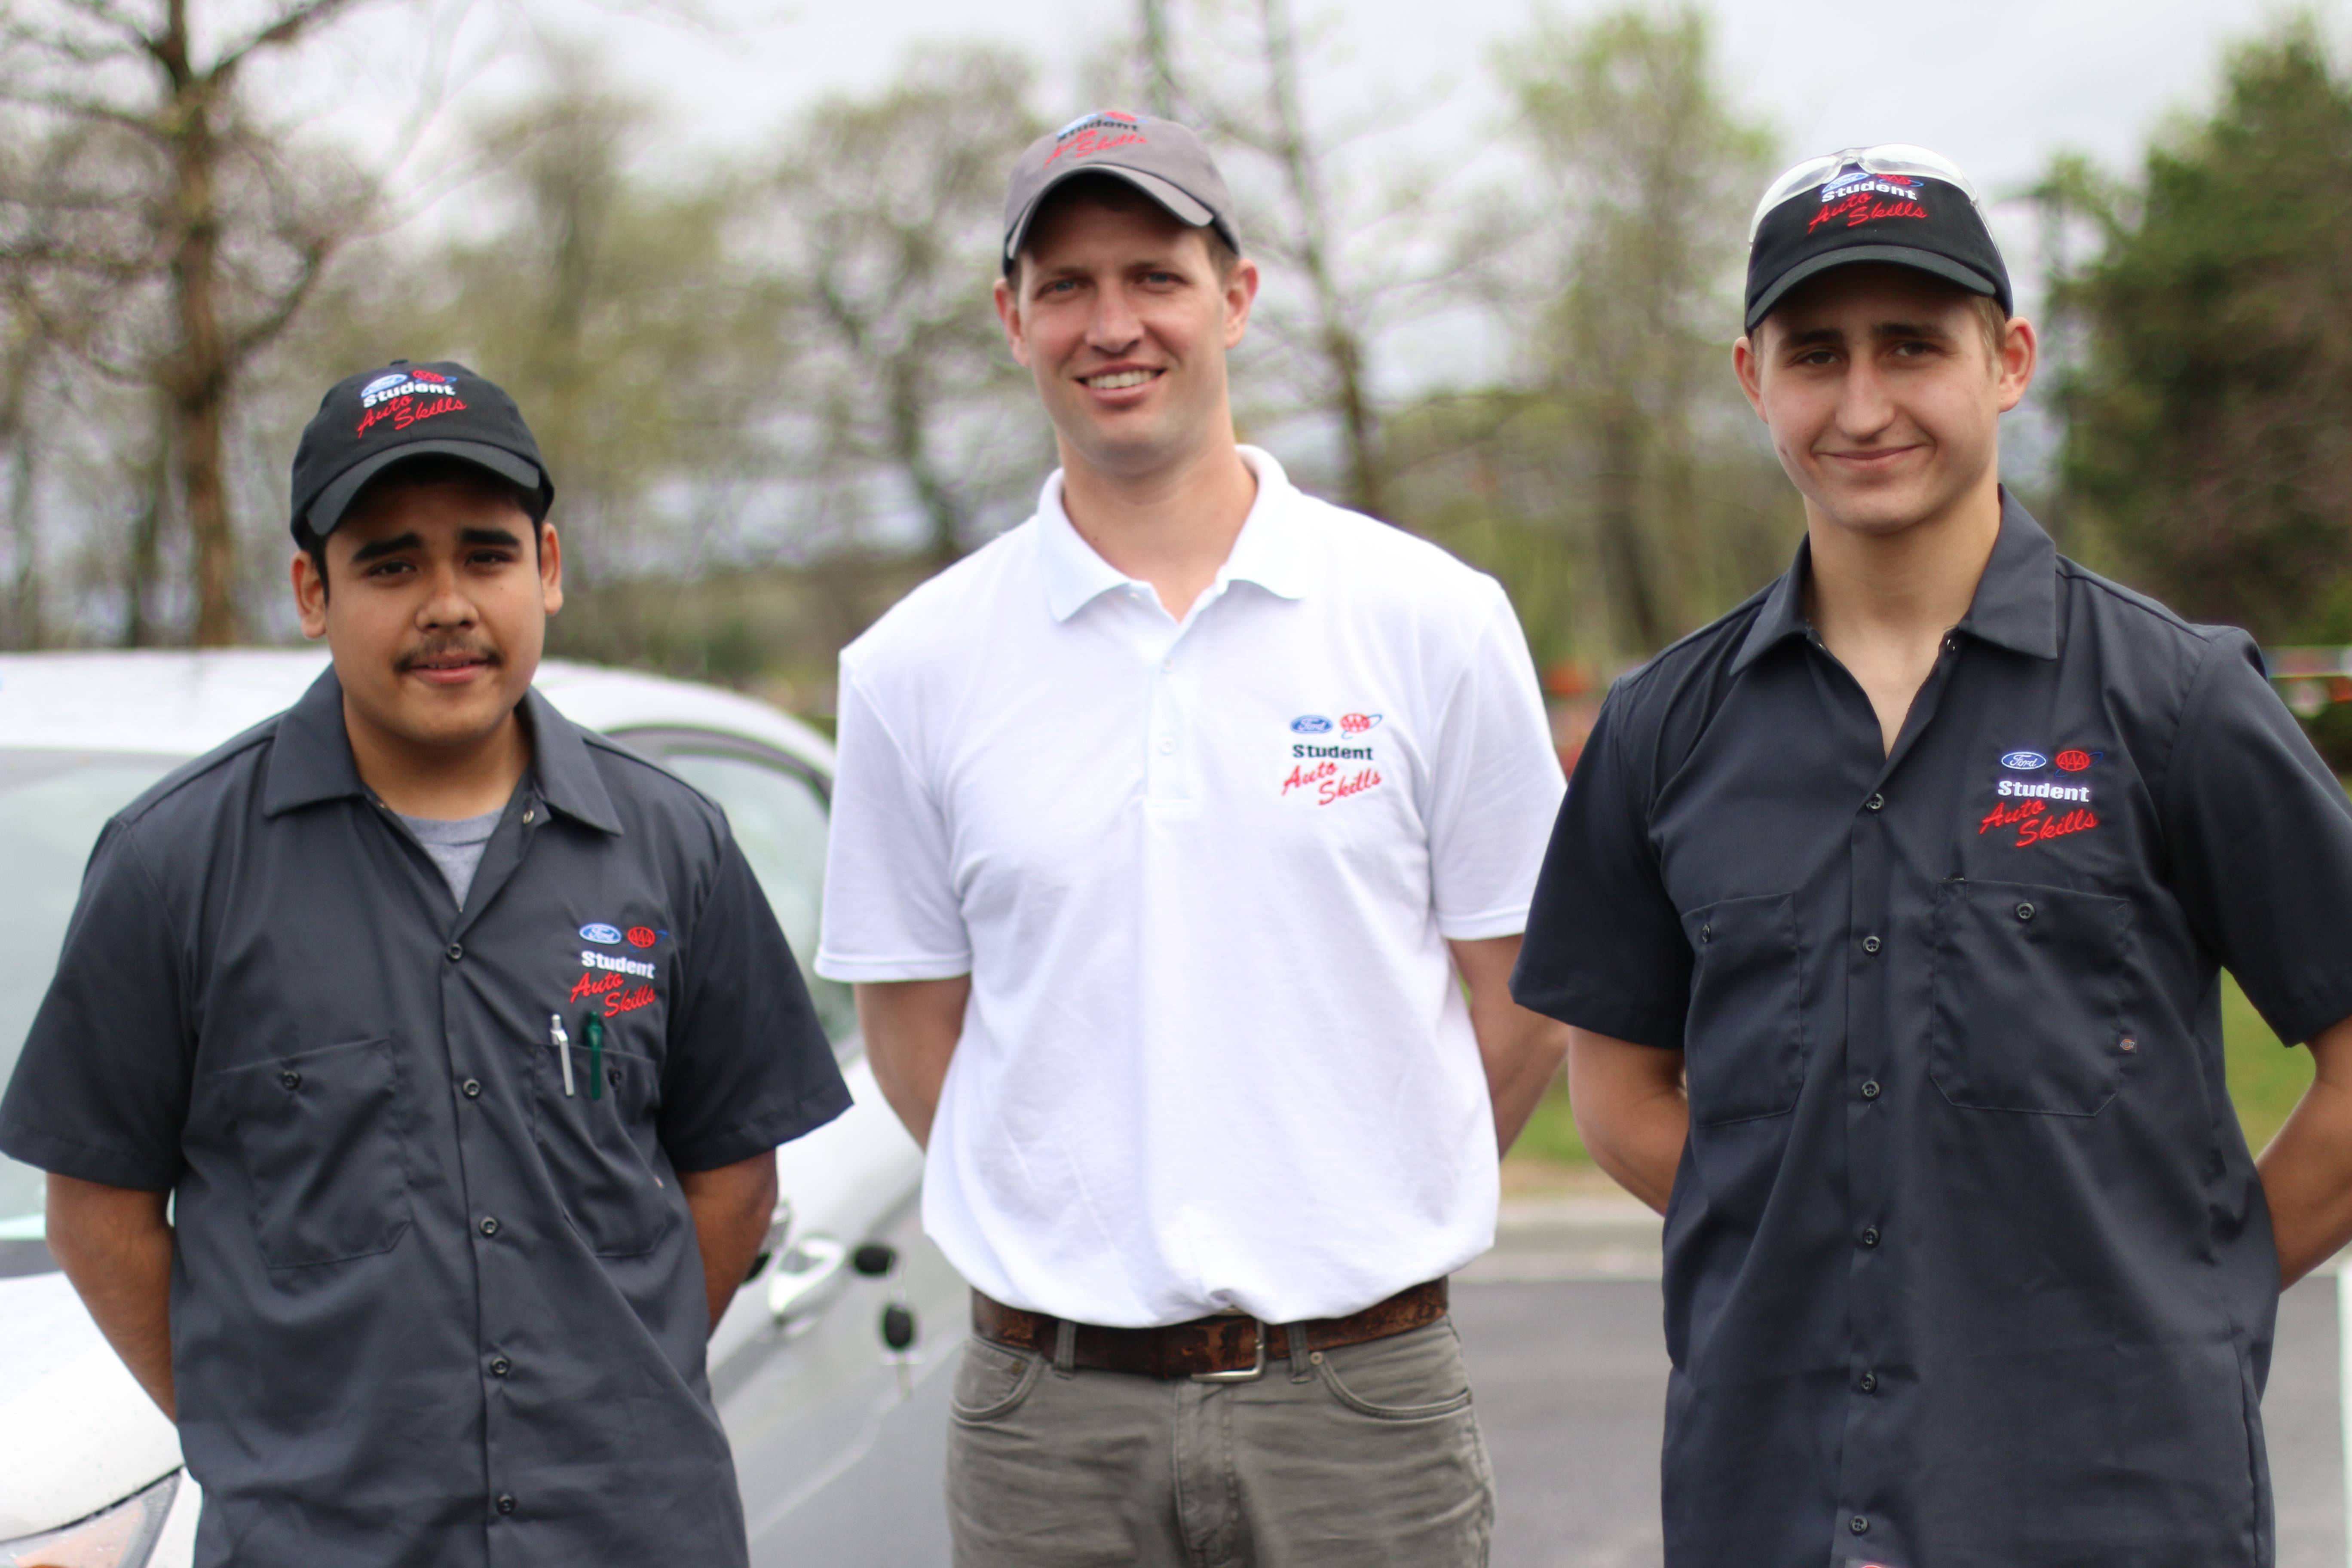 Christian Ramirez and Edward Pszczolkowski, led by instructor Dave Ligman, were the runner ups at the statewide competition held at UTI's Lisle campus on May 9. AAA Chicago